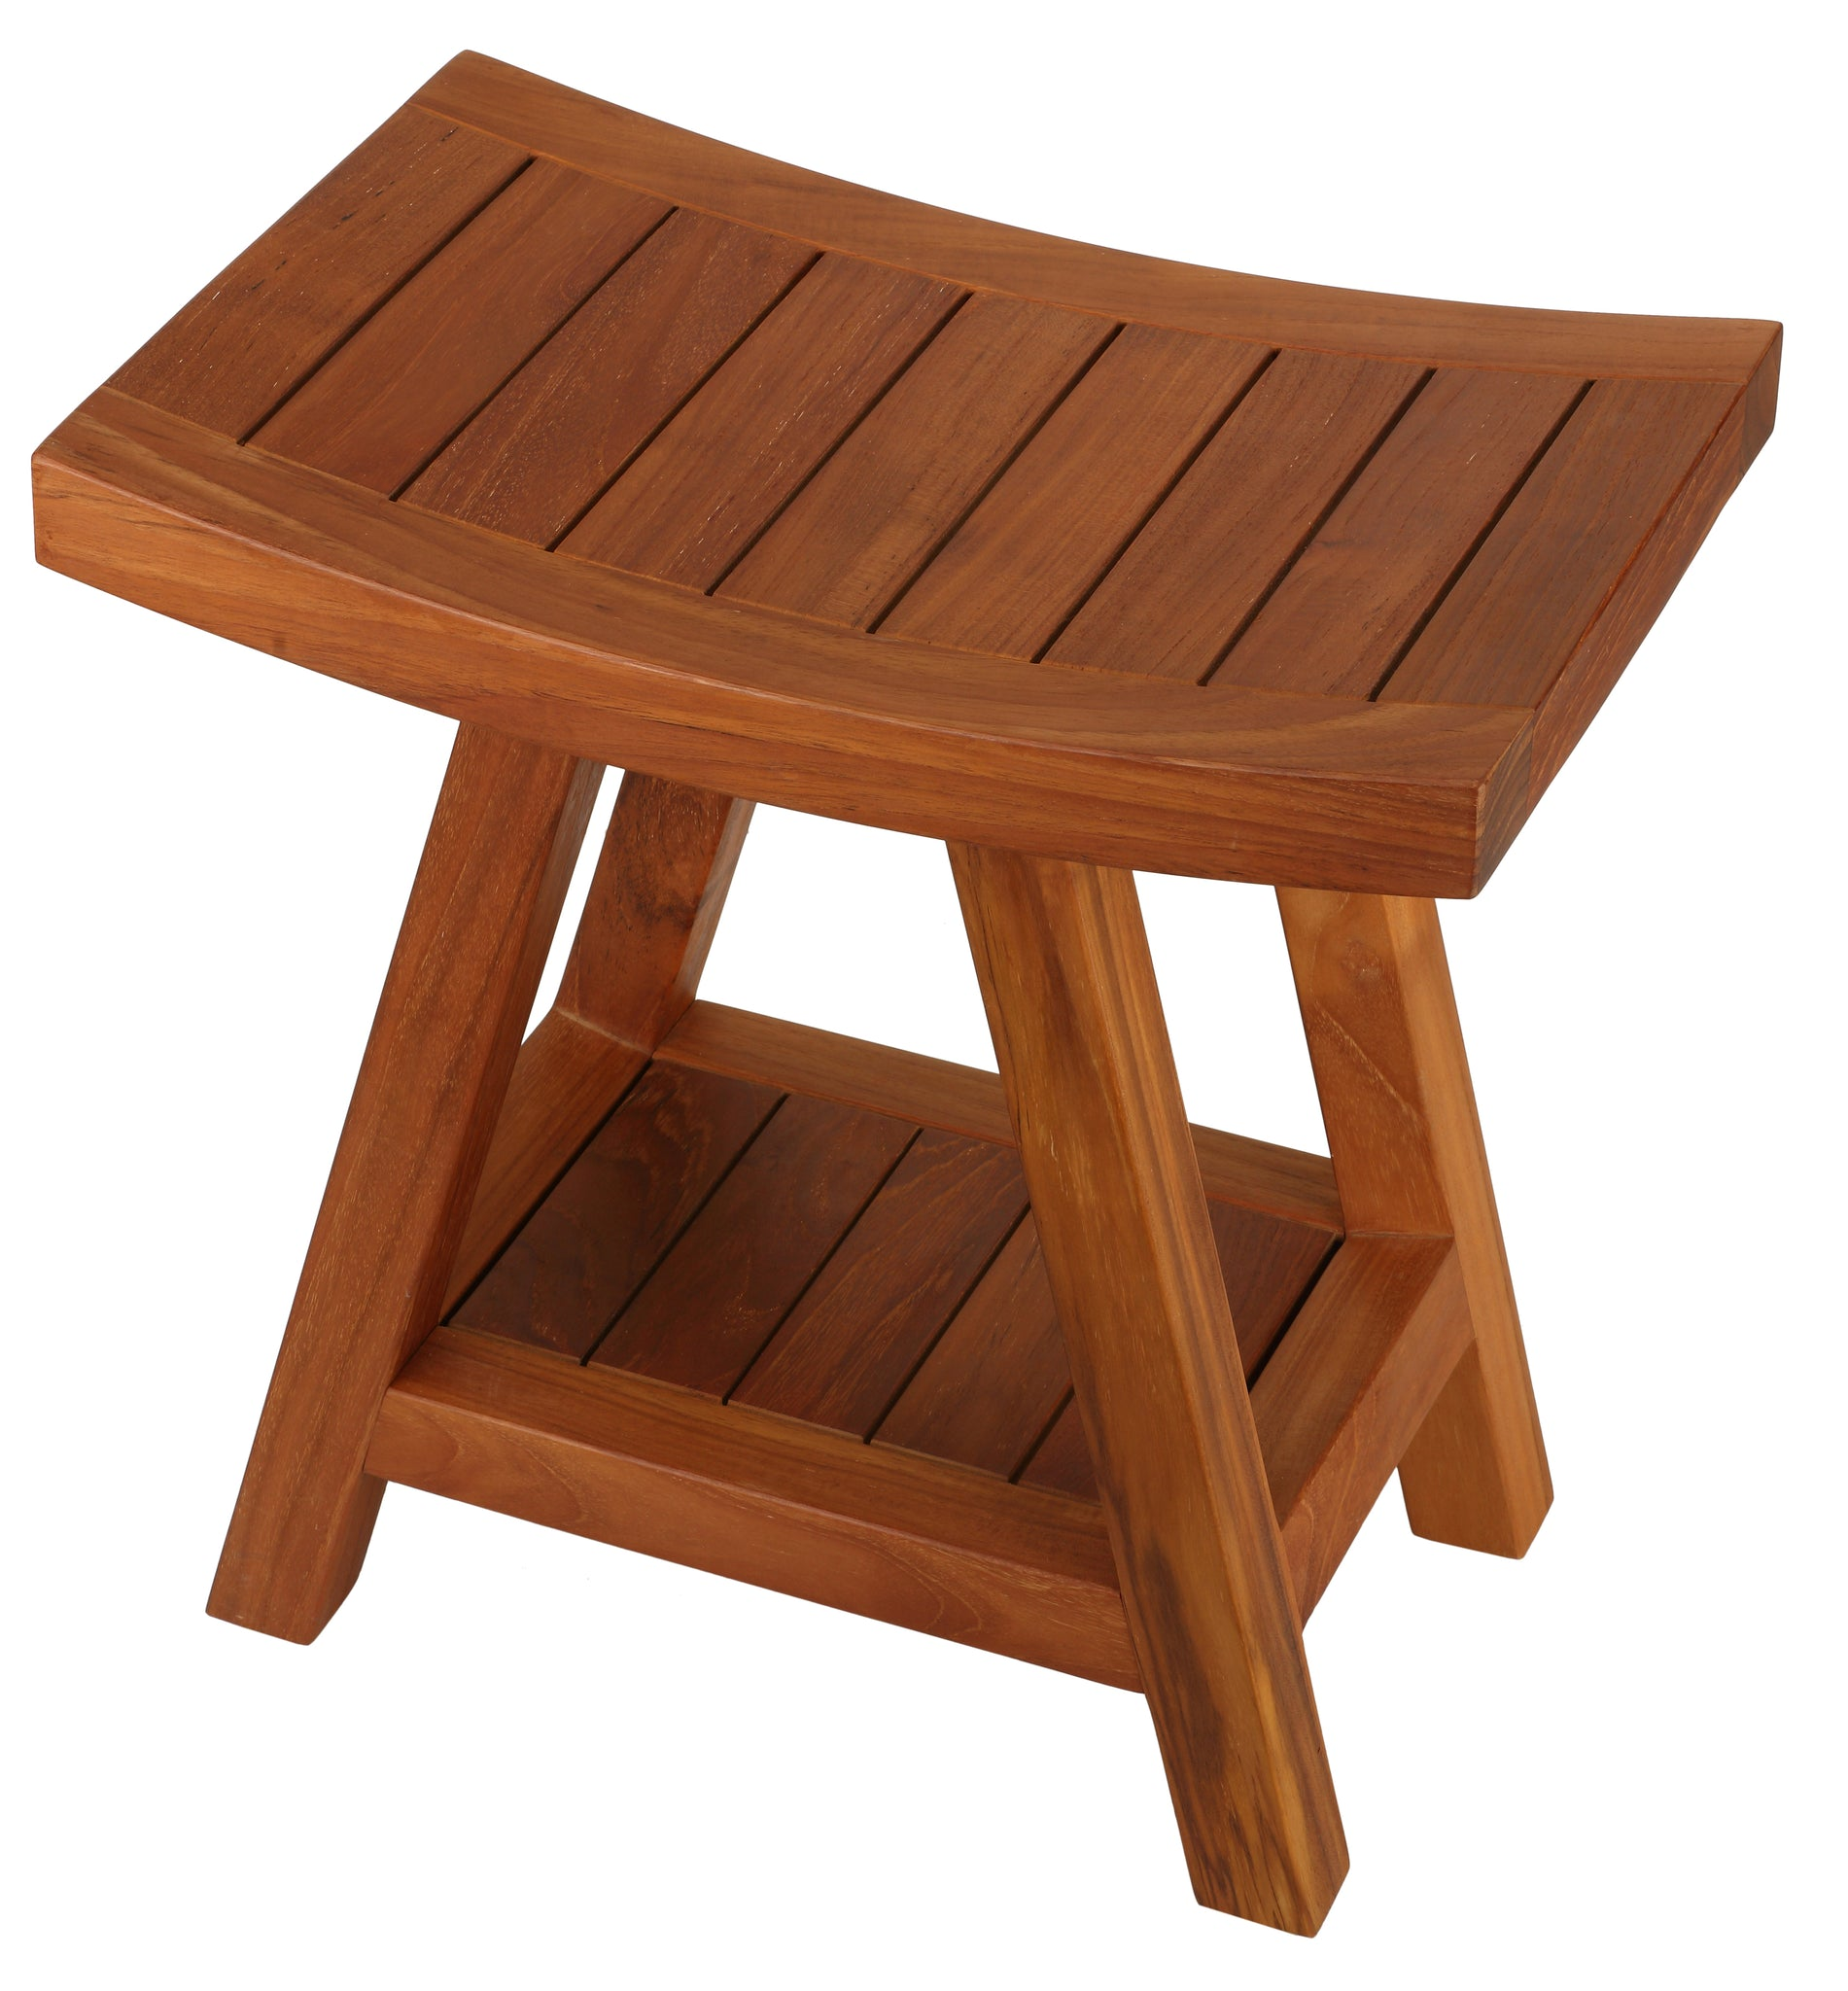 Bare Decor Niles Bench Stool with Shelf in Solid Teak Wood